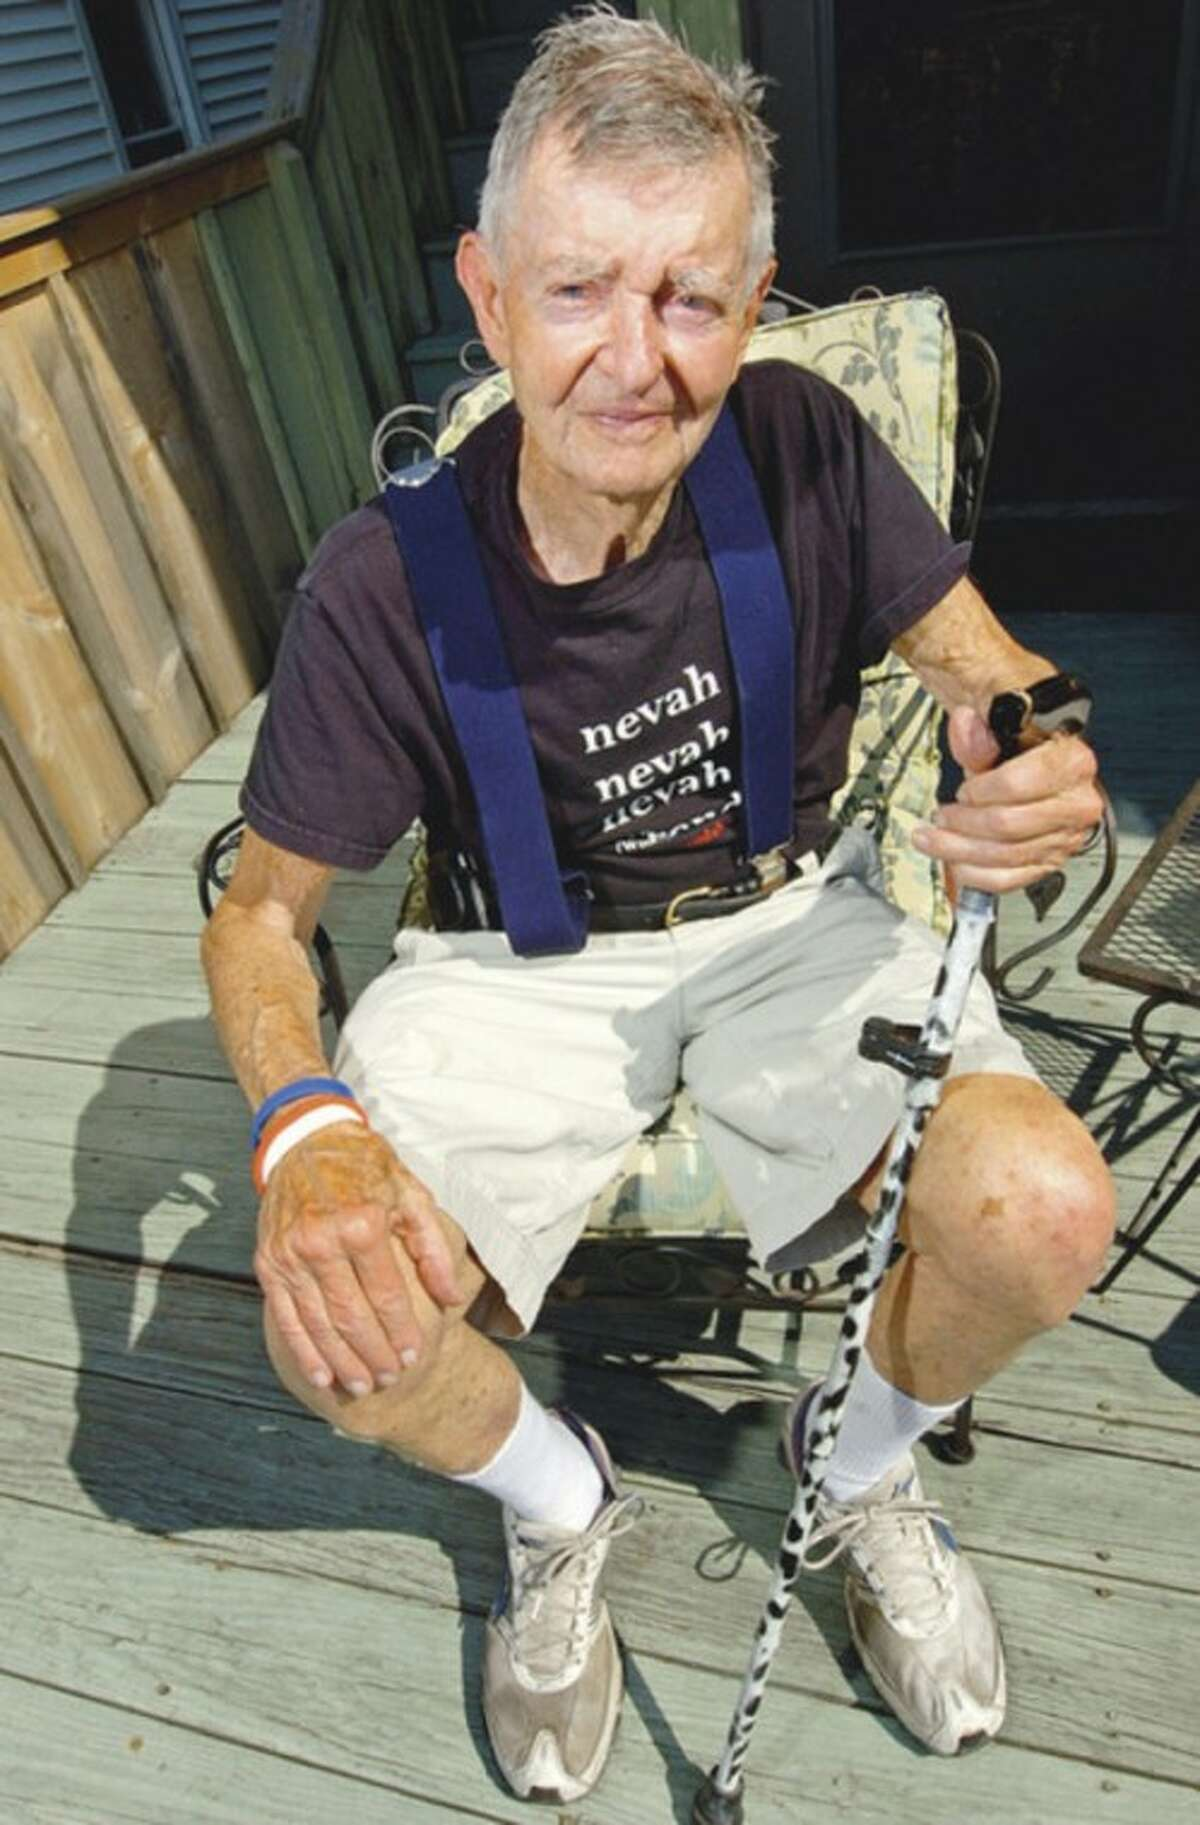 Hour photo / Erik Trautmann Paul Green has suffered from Parkinson's Disease for 20 years, but has slowed the progression from daily rowing activities. His rowing has inspired the Saugatuck Rowing Club to host an annual regatta to raise money for Green's Parkinson's Foundation, Never Surrender.